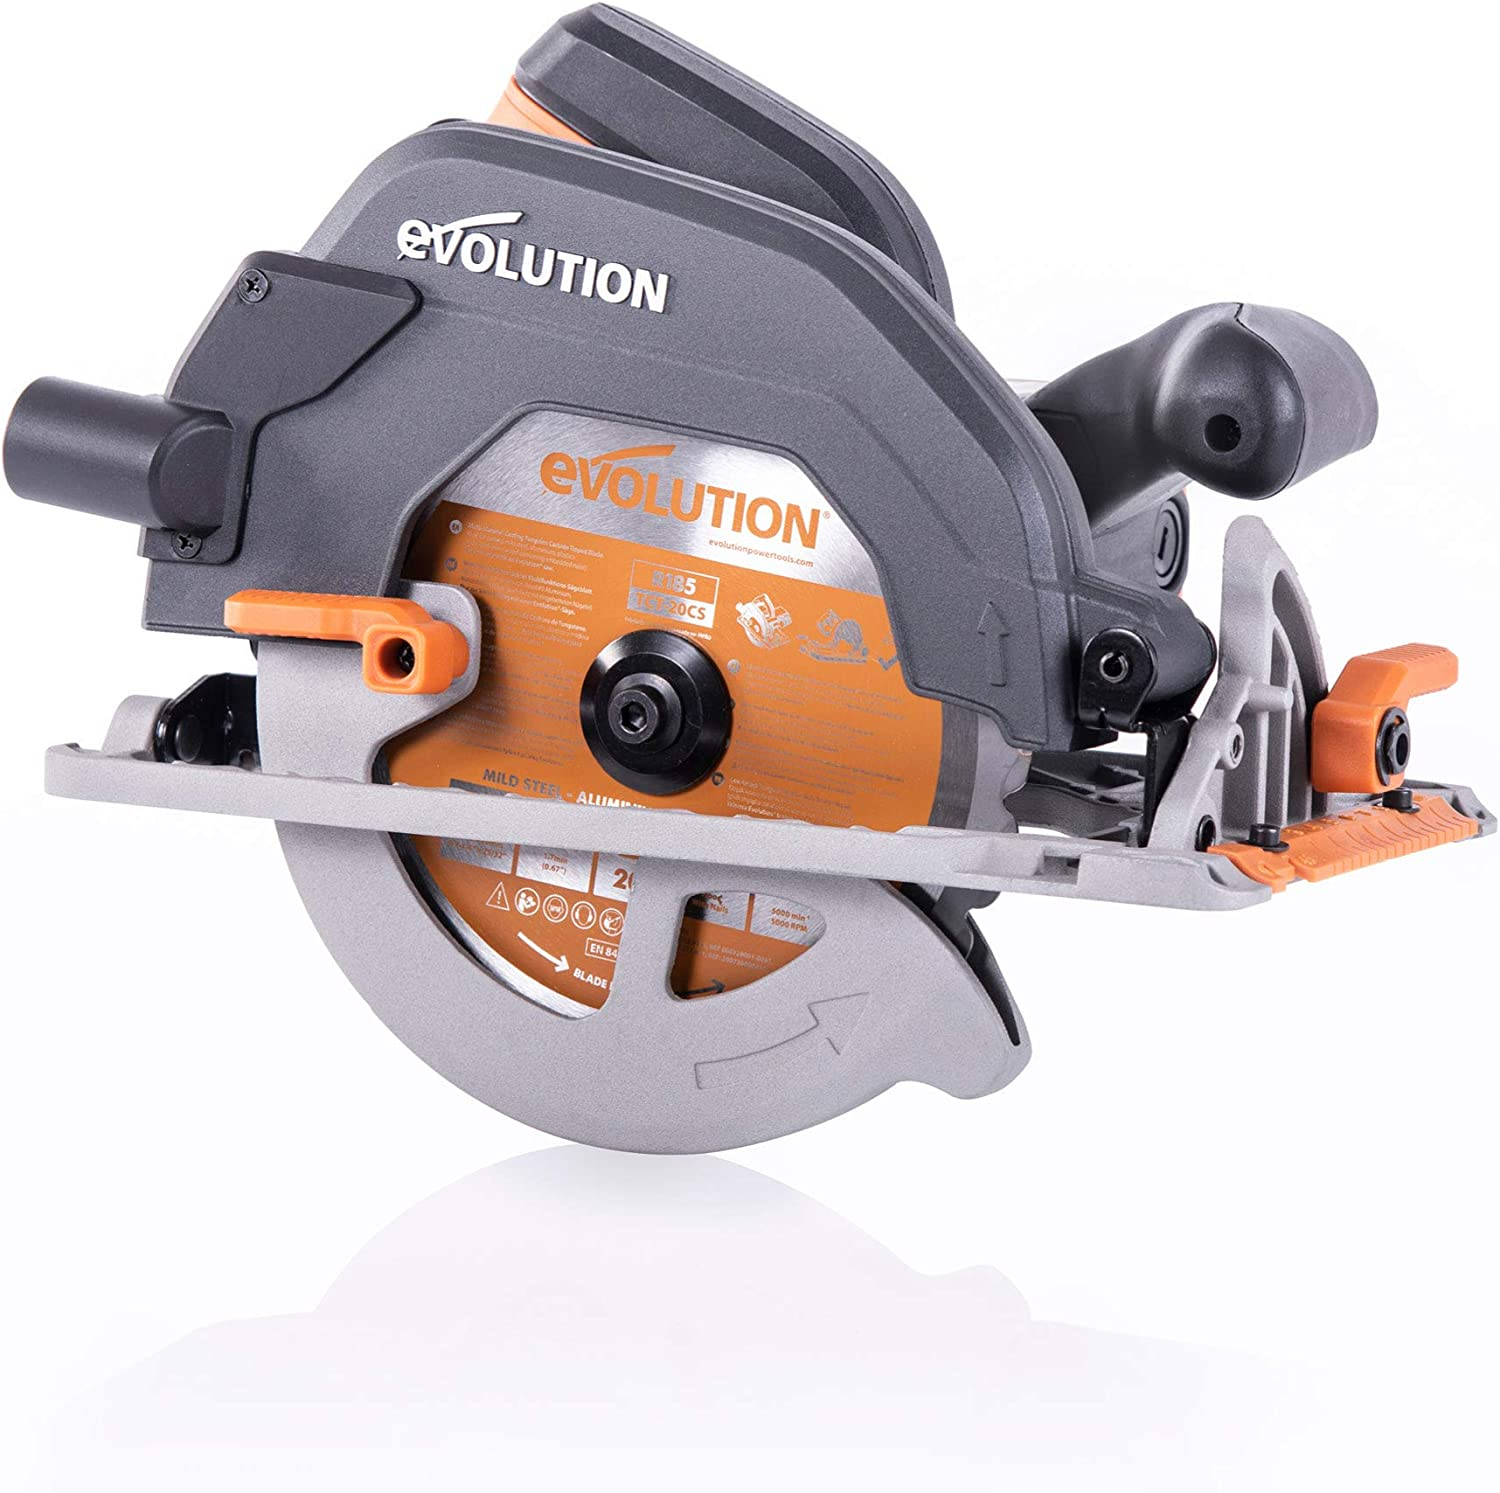 Evolution Power Tools 027-0003C Sierra circular multimaterial, 1600 W, 230 V